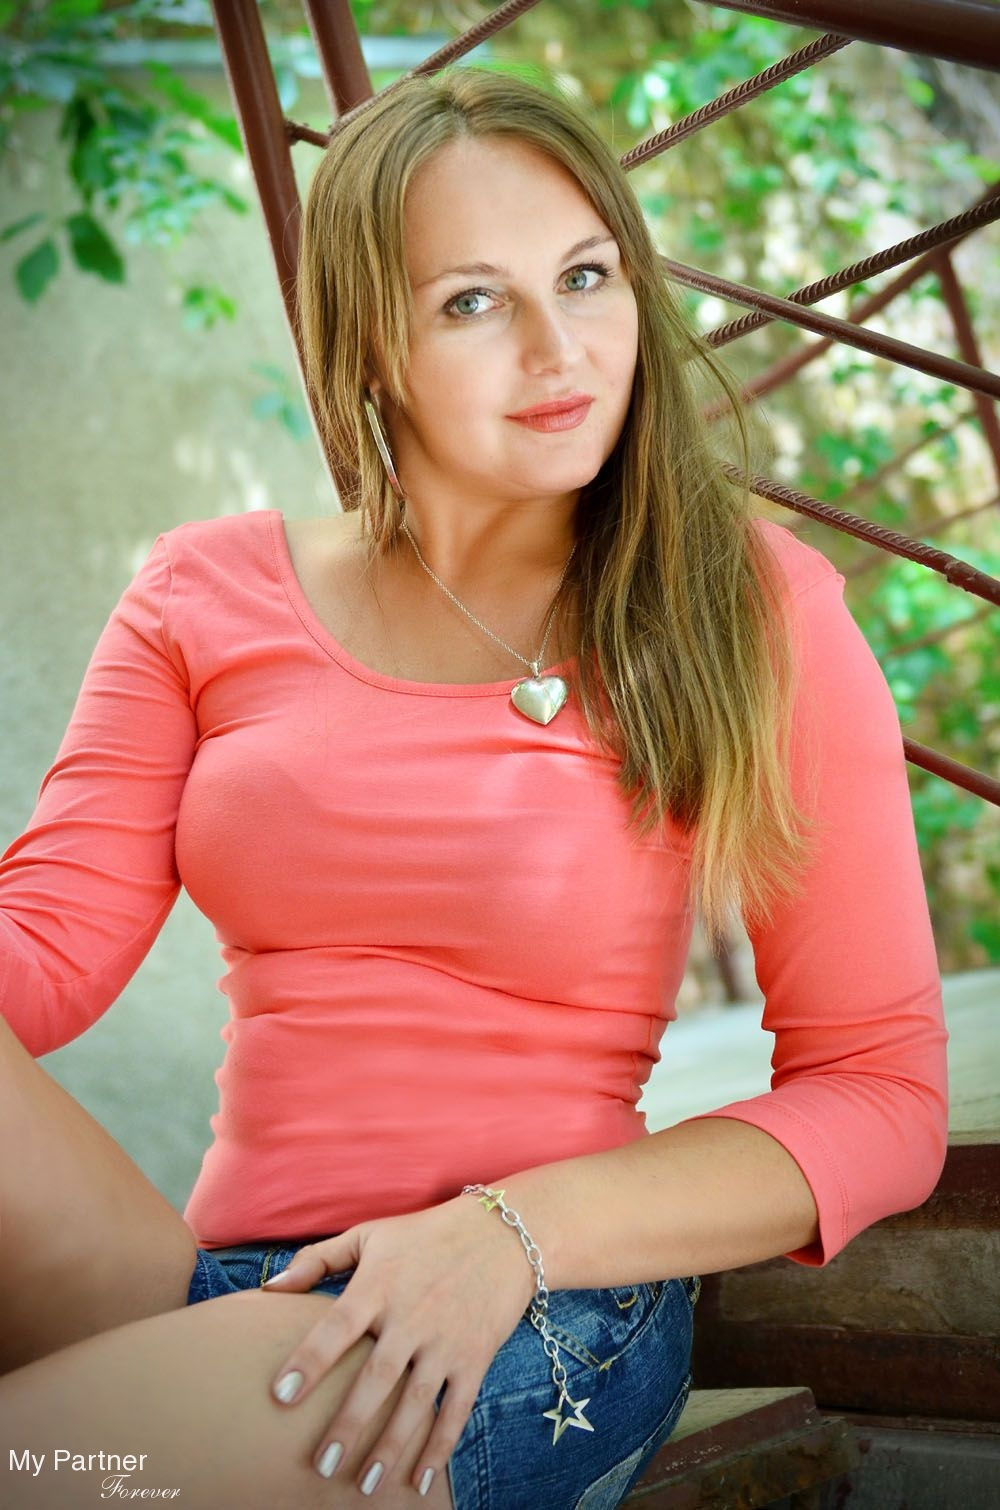 Russian women over 45 dating american men